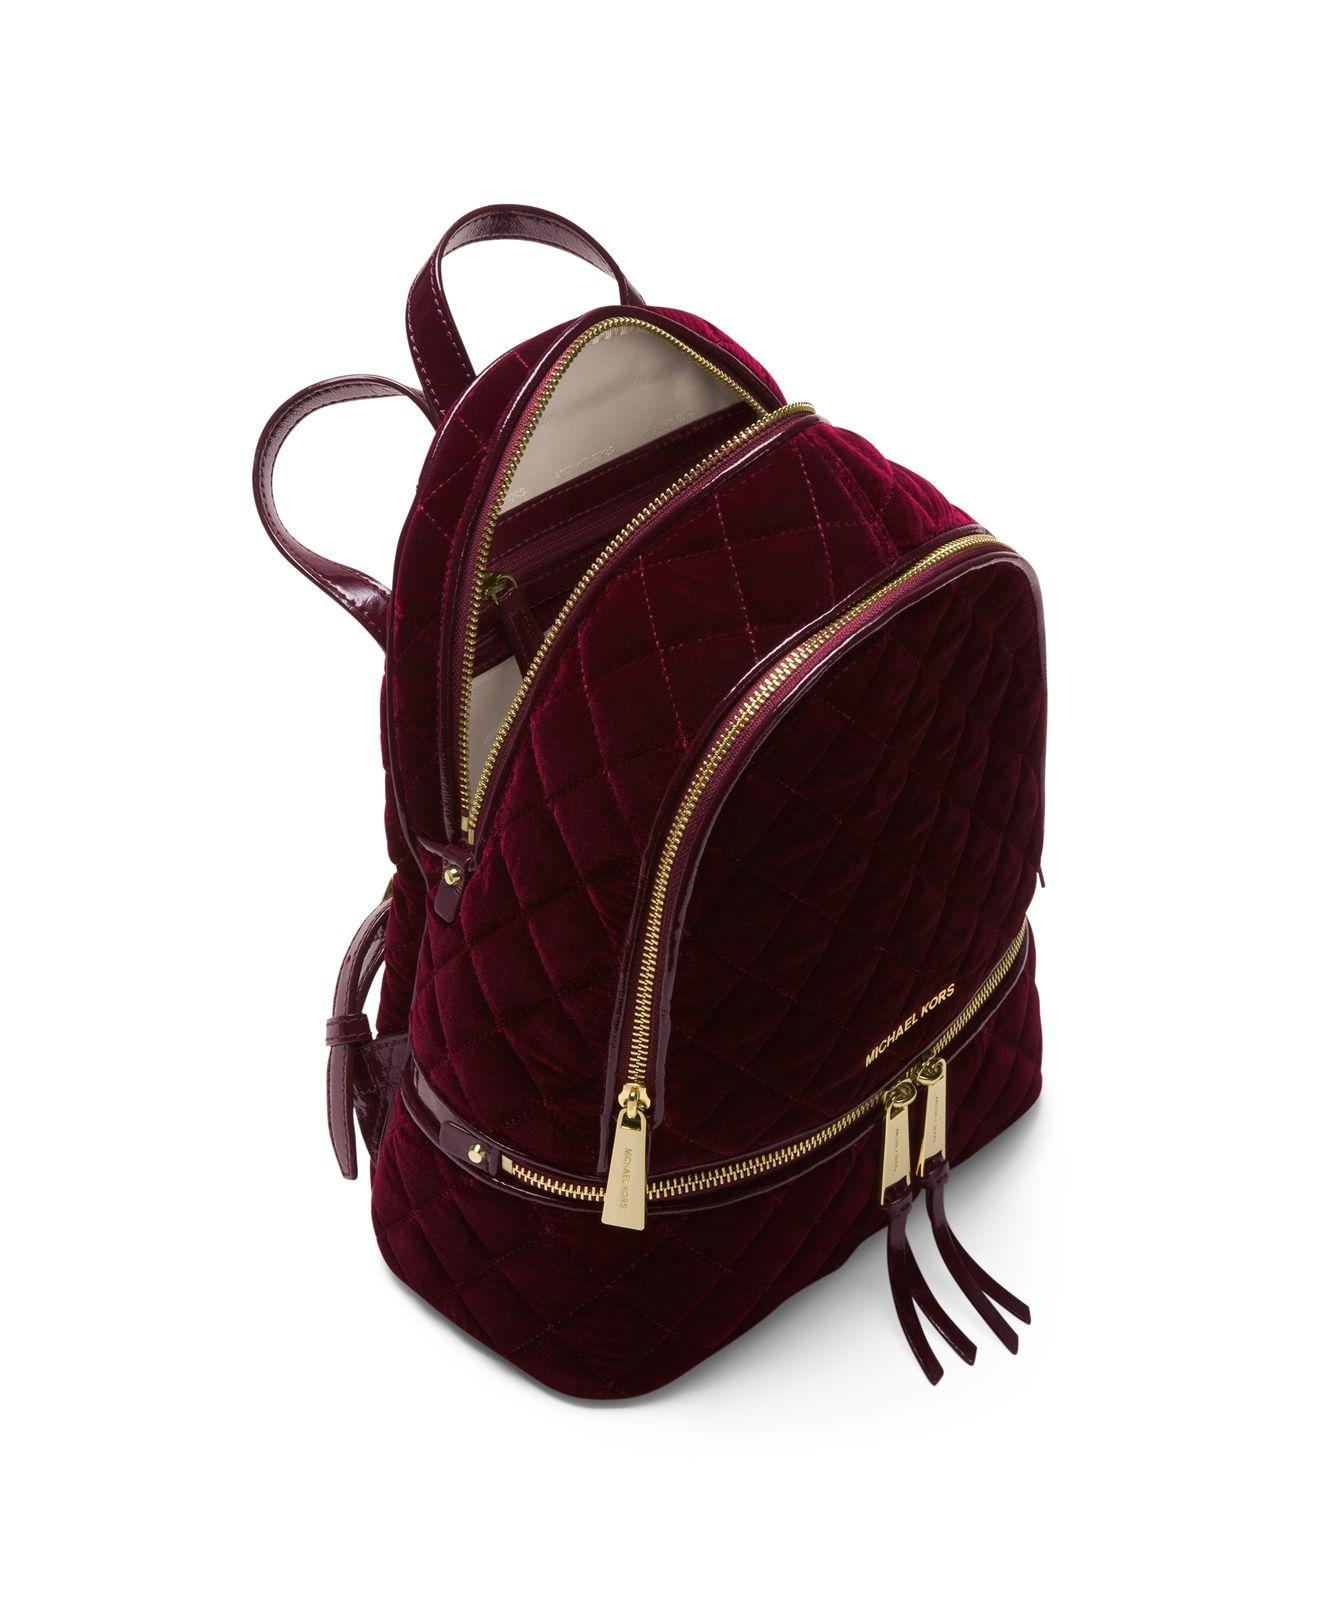 8ba19f87cec95c coupon code for michael kors crossbodies medium camera crossbody bag 4bd4f  09cc0; usa michael michael kors rhea velvet backpack in purple lyst acf2d  ce53b